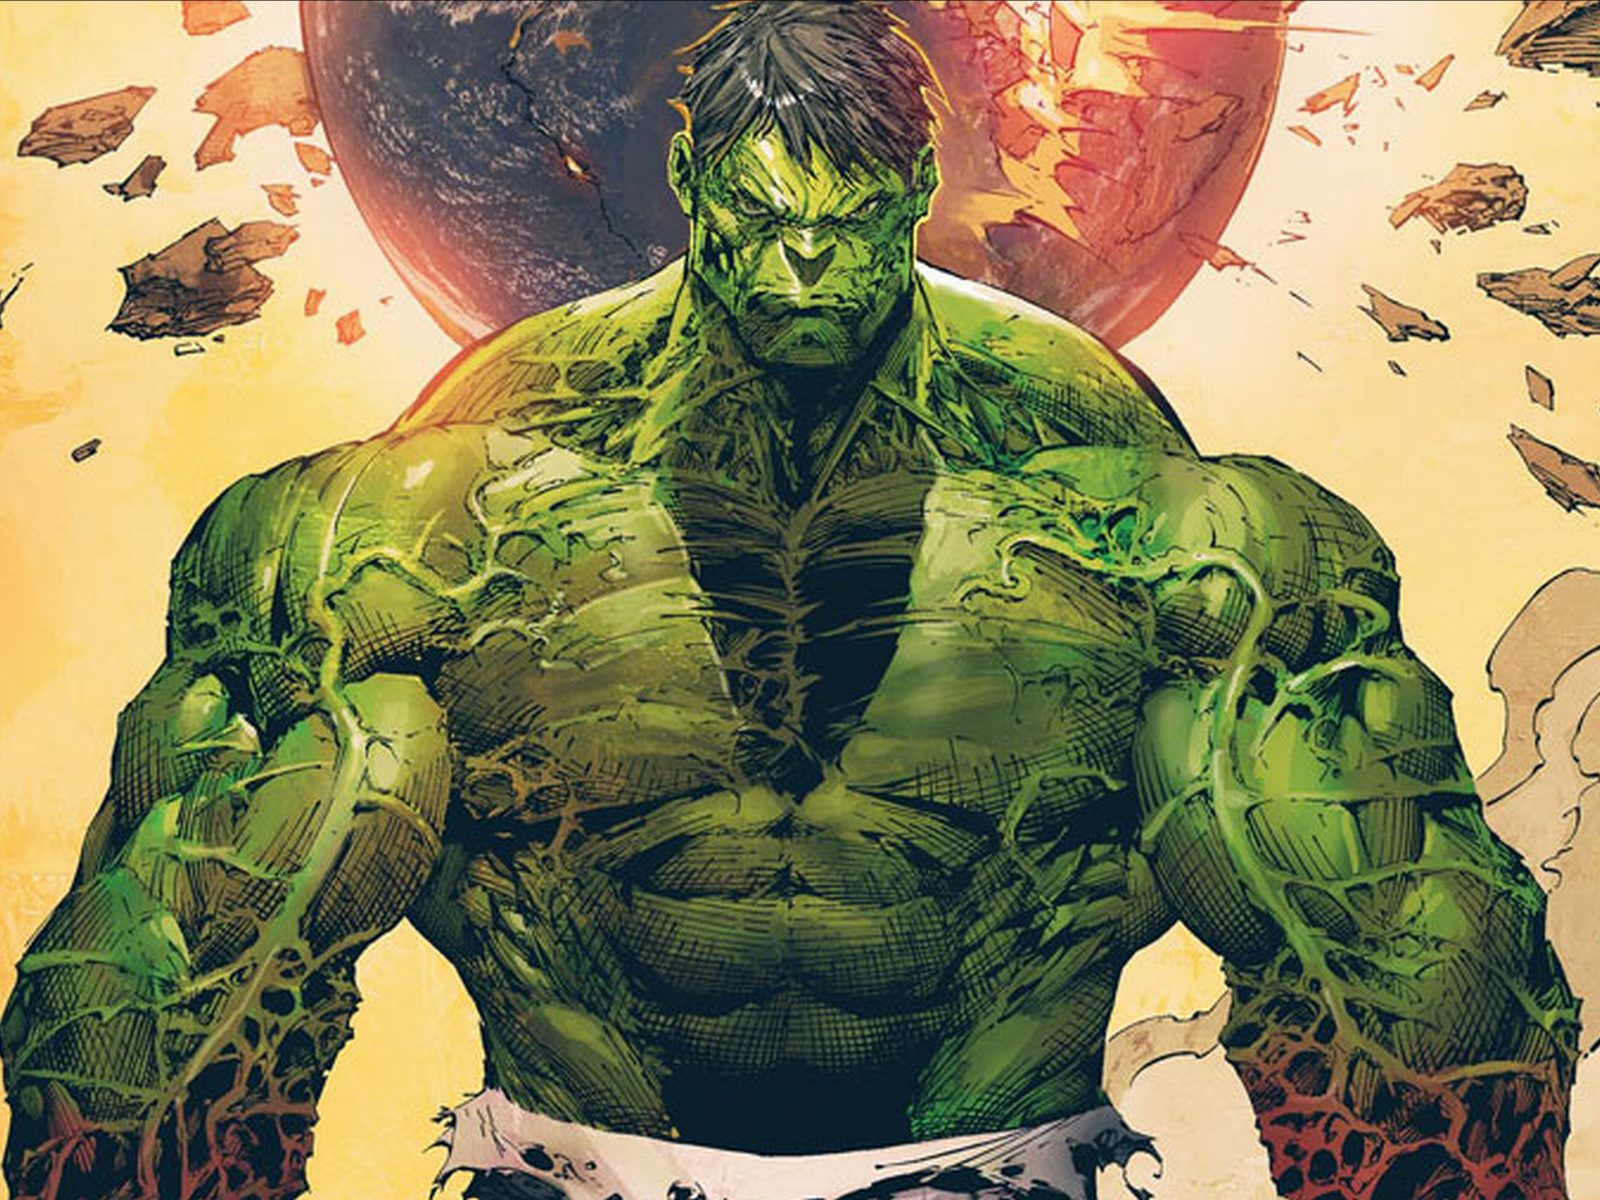 Hd Motivational Wallpapers For Android Hulk Marvel 4k Uhd Wallpaper Wallpapers Gg